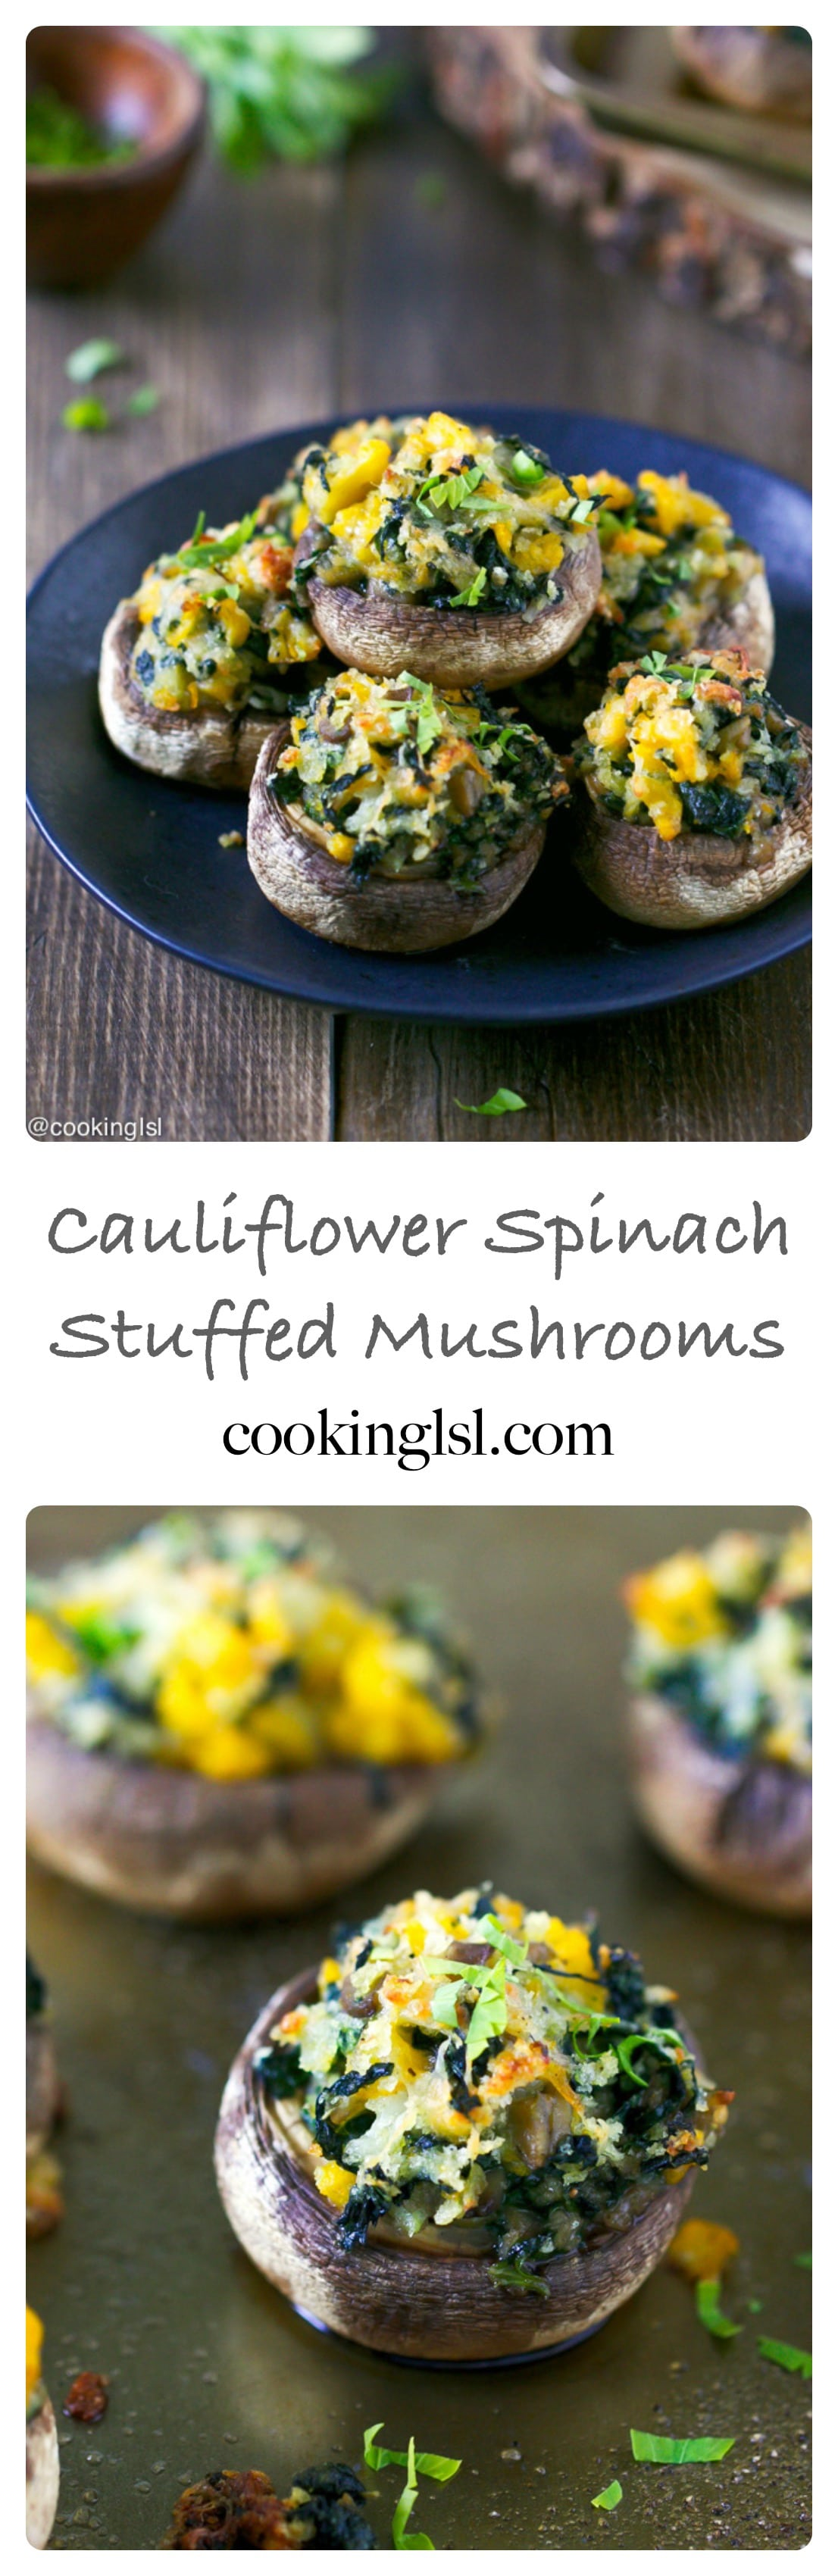 stuffed-mushrooms-spinach-cauliflower-appetizer